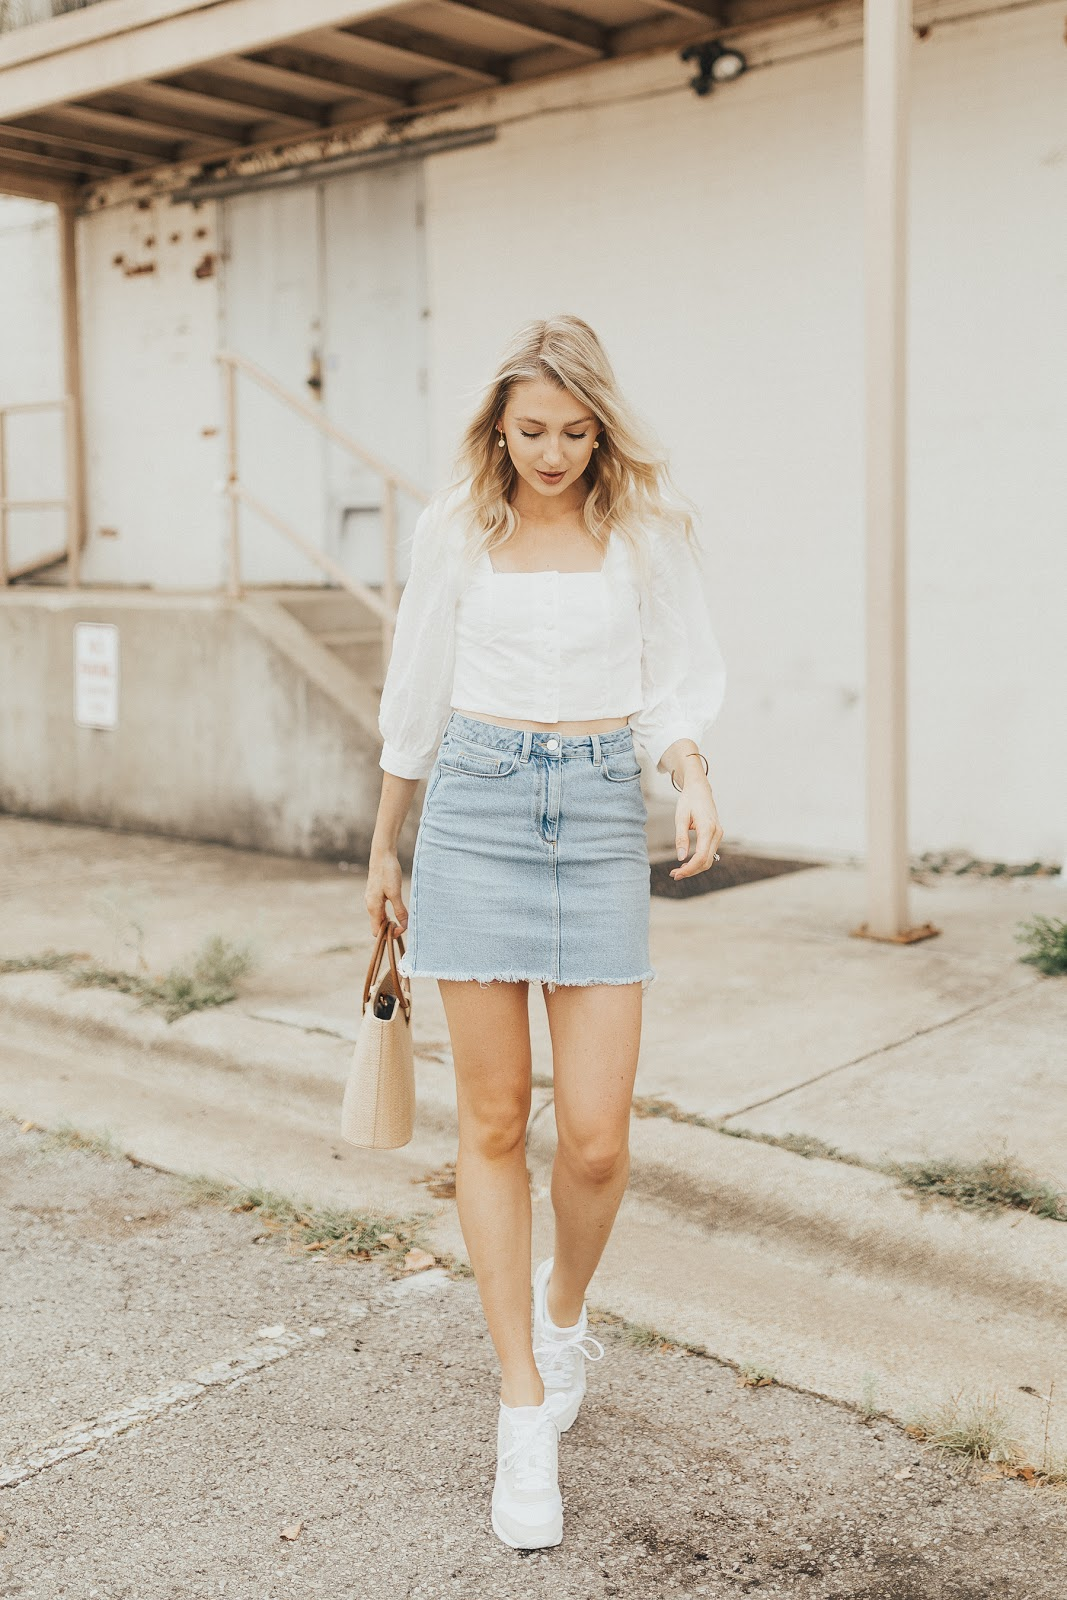 dress down a top with a denim skirt & sneakers